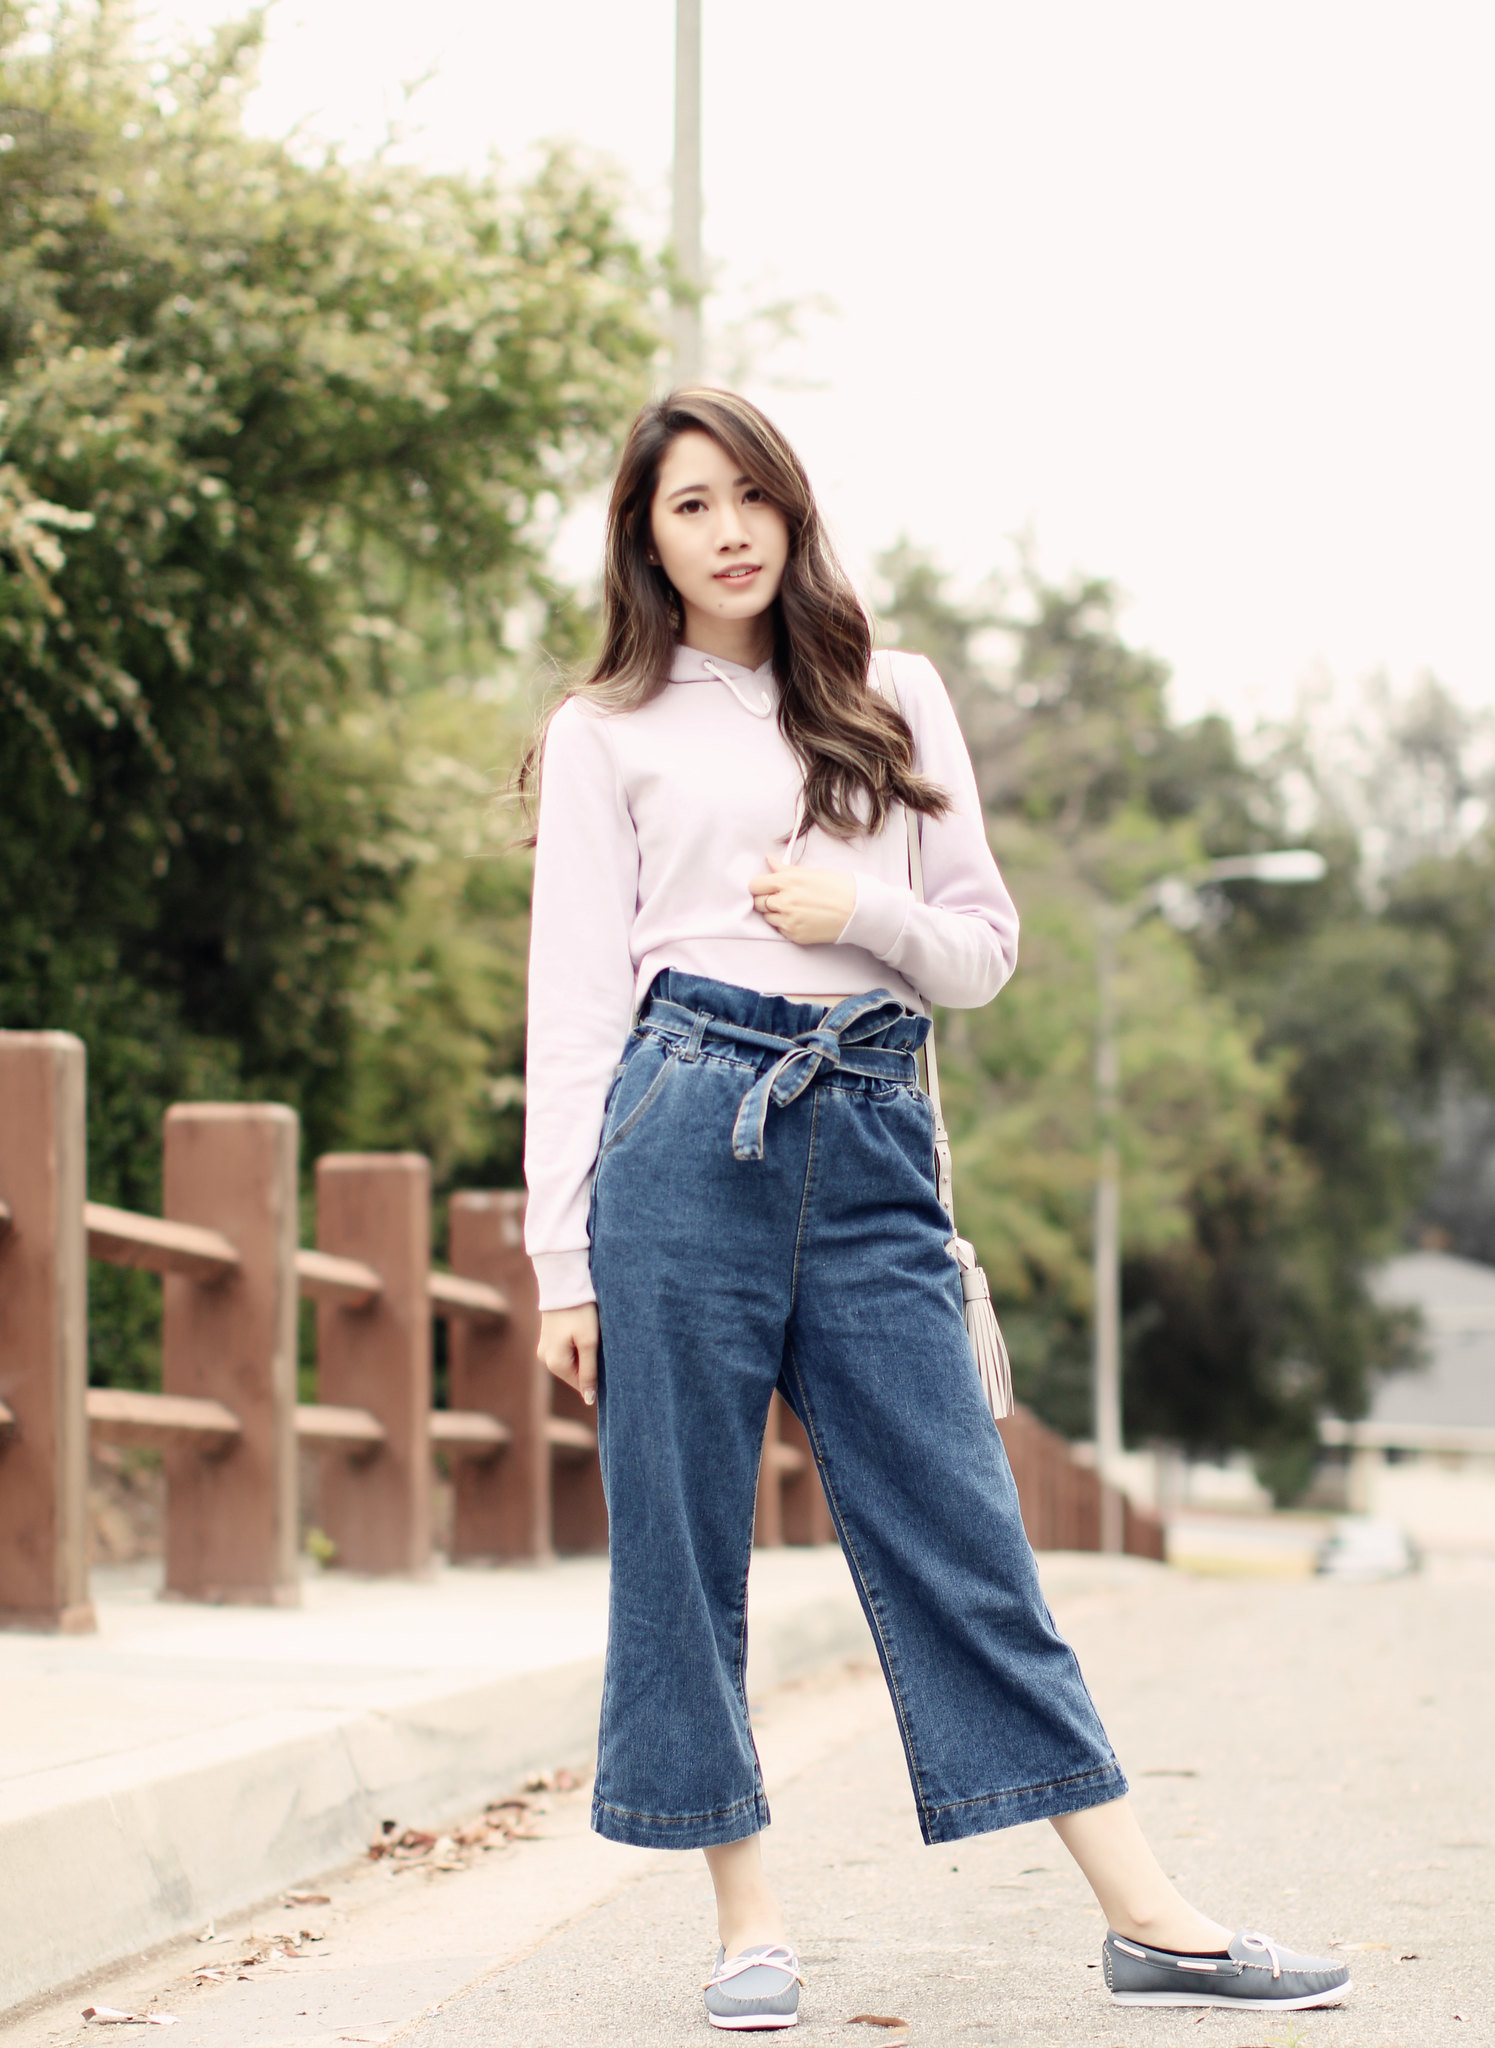 5052-ootd-fashion-style-outfitoftheday-wiwt-streetstyle-zara-f21xme-denim-thrifted-guess-koreanfashion-lookbook-elizabeeetht-clothestoyouuu